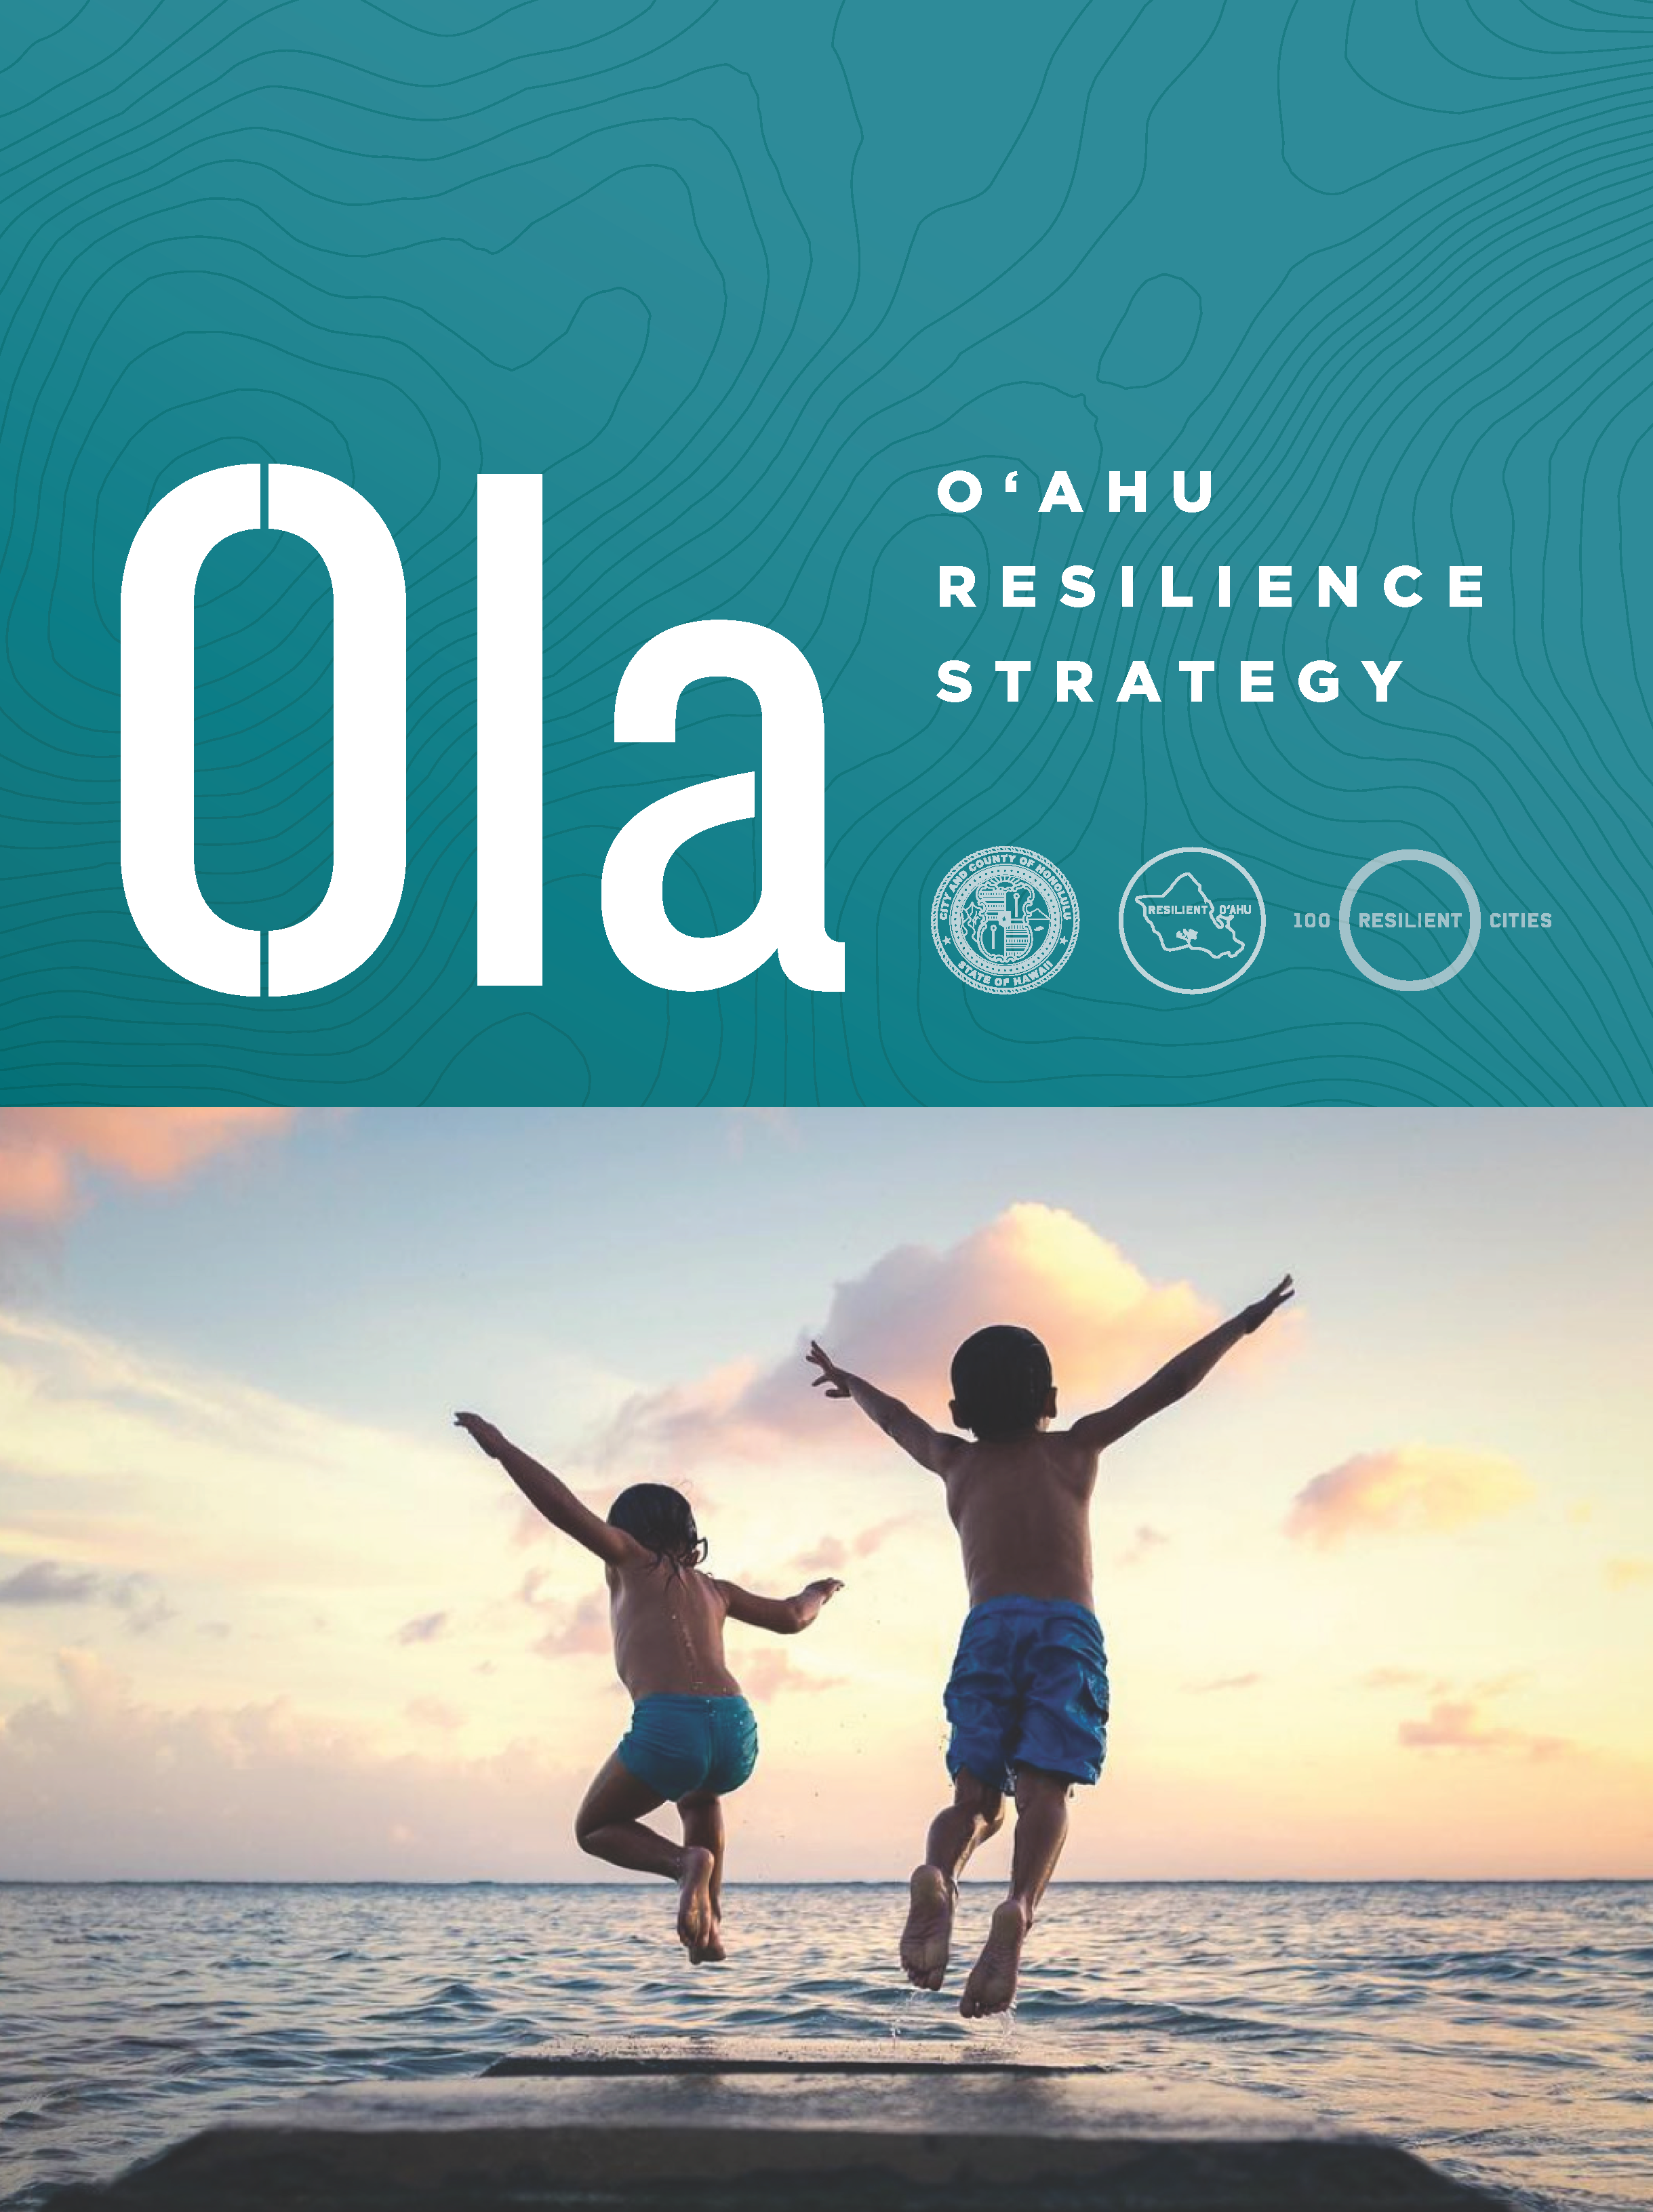 Ola Oahu Resilience Strategy Cover.png